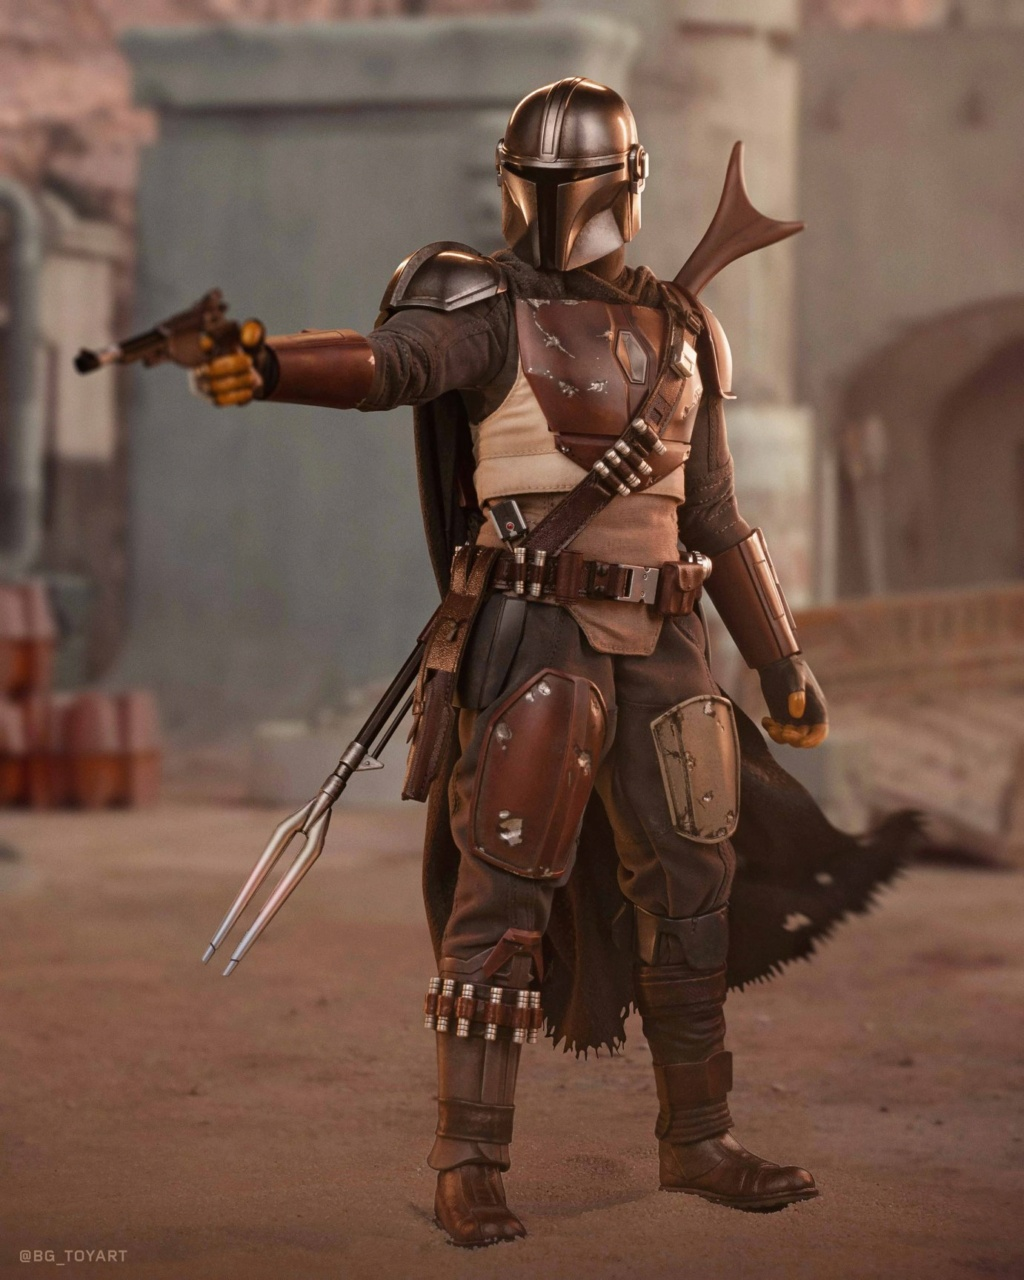 NEW PRODUCT: HOT TOYS: THE MANDALORIAN -- THE MANDALORIAN 1/6TH SCALE COLLECTIBLE FIGURE 12257